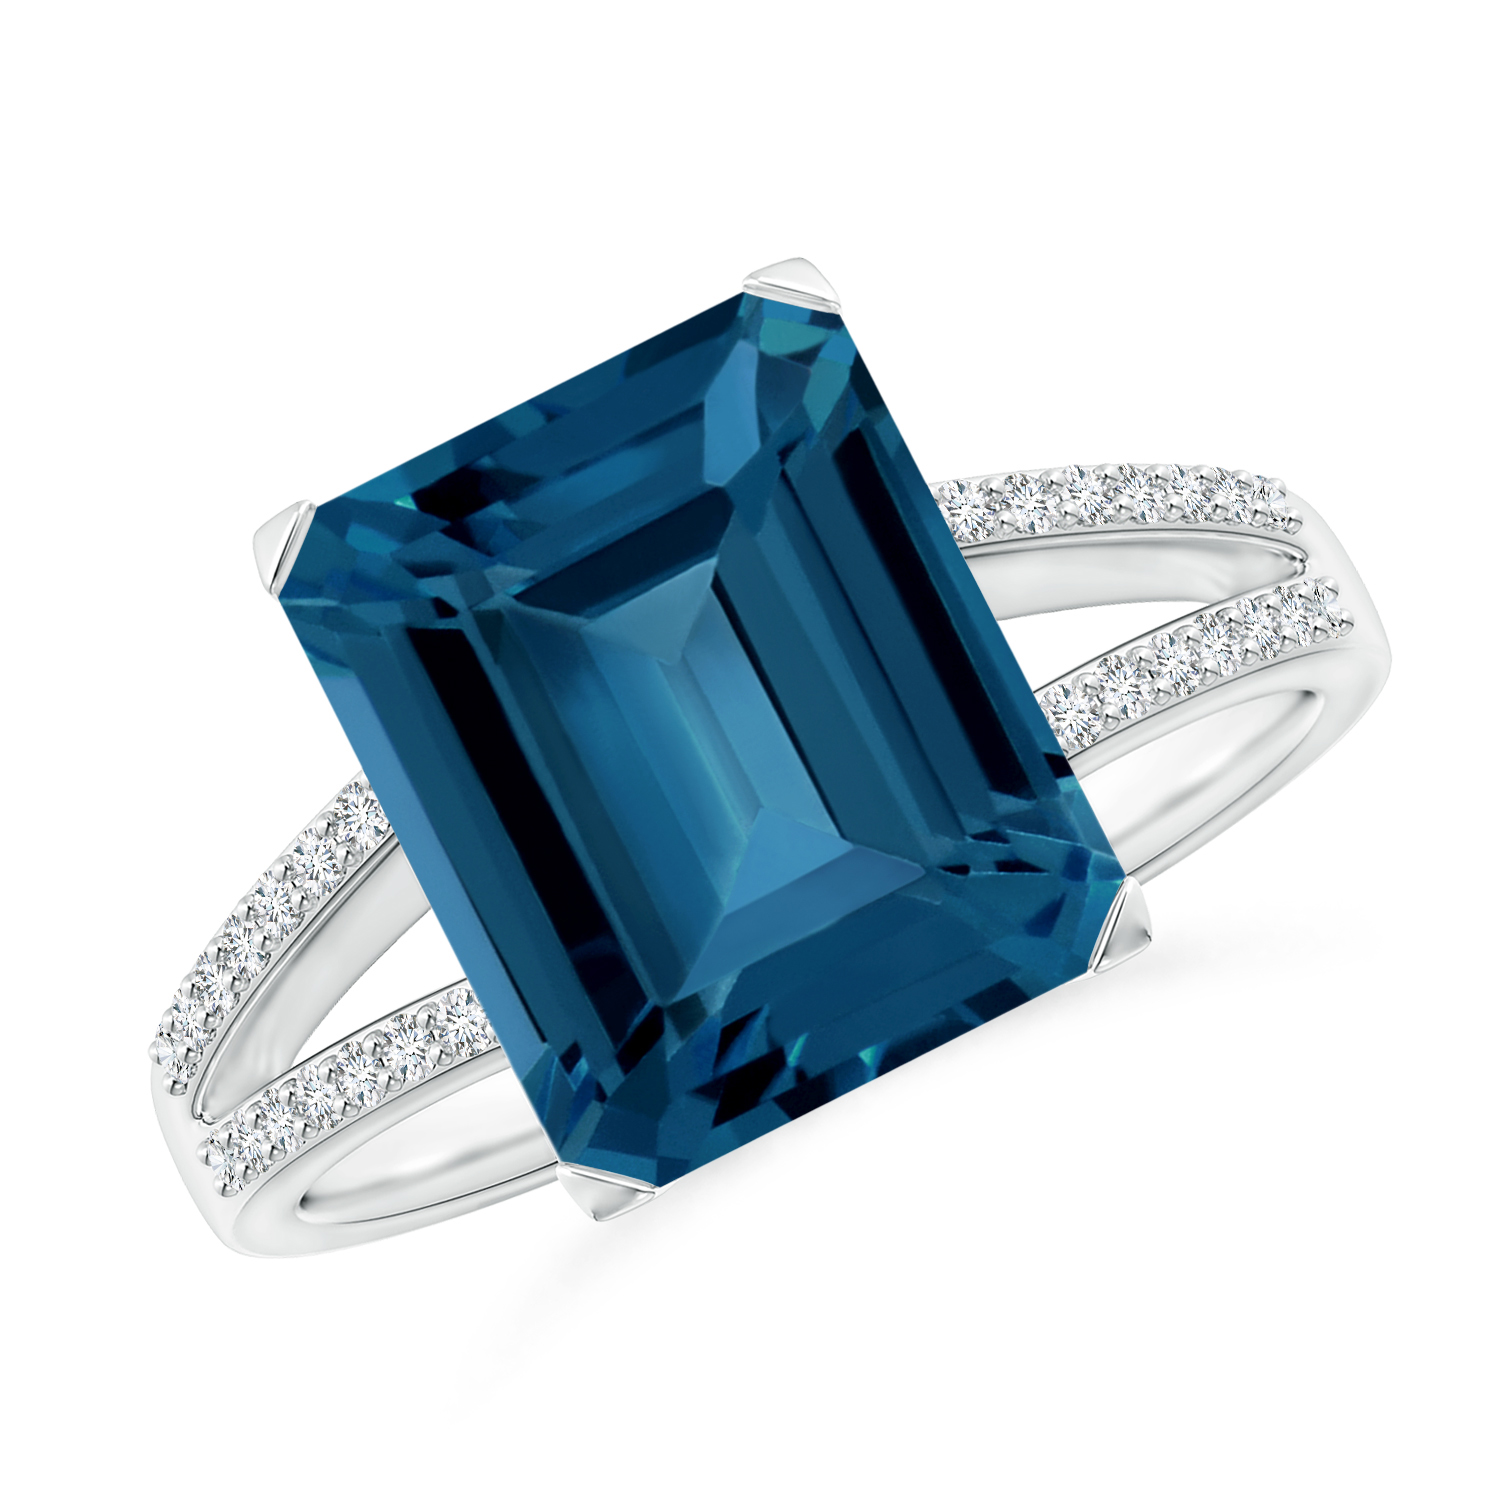 Emerald Cut London Blue Topaz Cocktail Ring with Diamond Accents - Angara.com